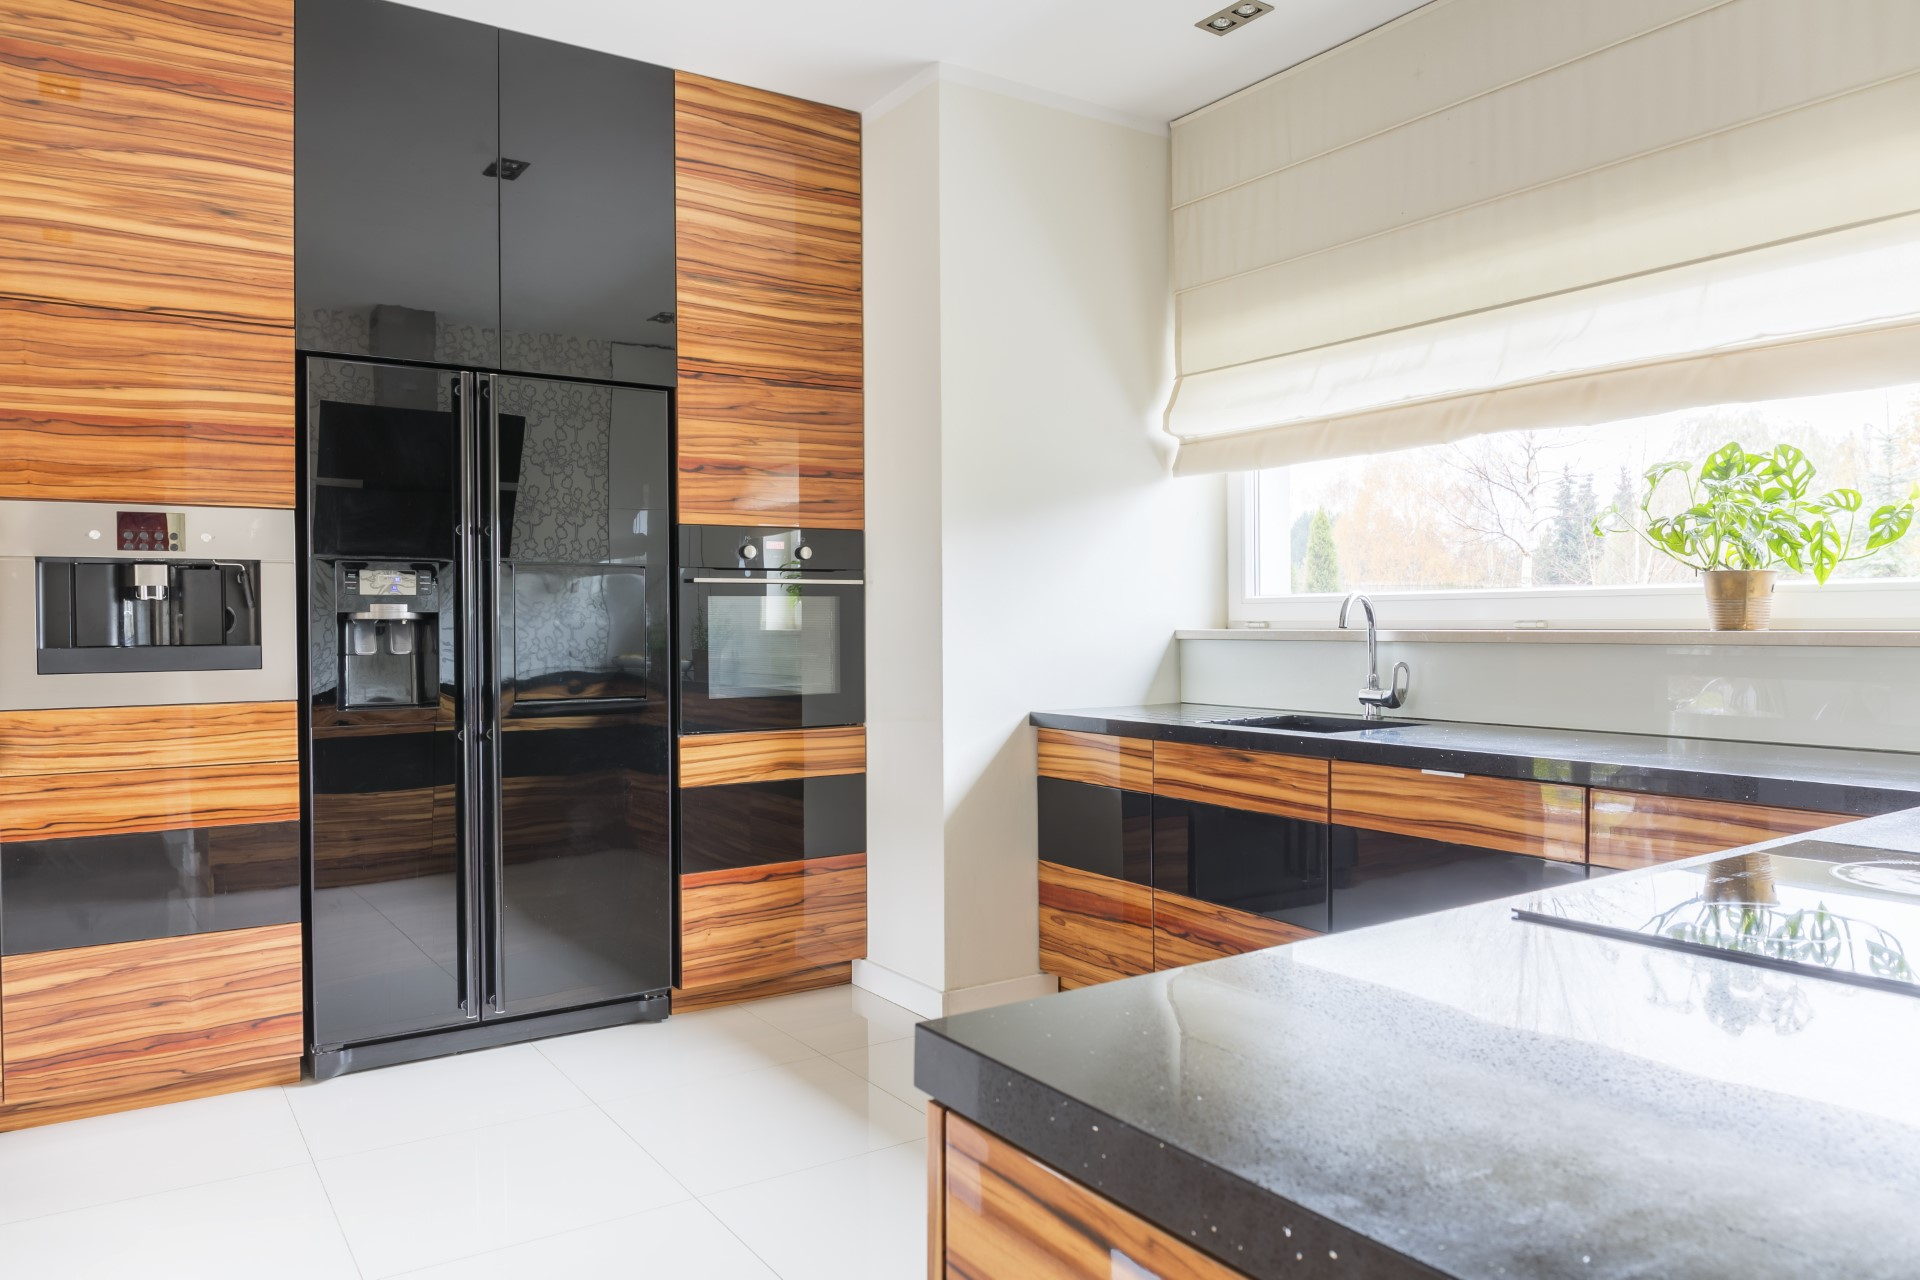 Nothing displays elegance quite like out of the ordinary in this burned stained wood theme. This kitchen emphasizes on the glossy ebony tones that help bring out the fine grain in the burnt wood cabinets. This high level gloss is not the cheapest style, but it gives that surreal, abstract, nature type of feel.